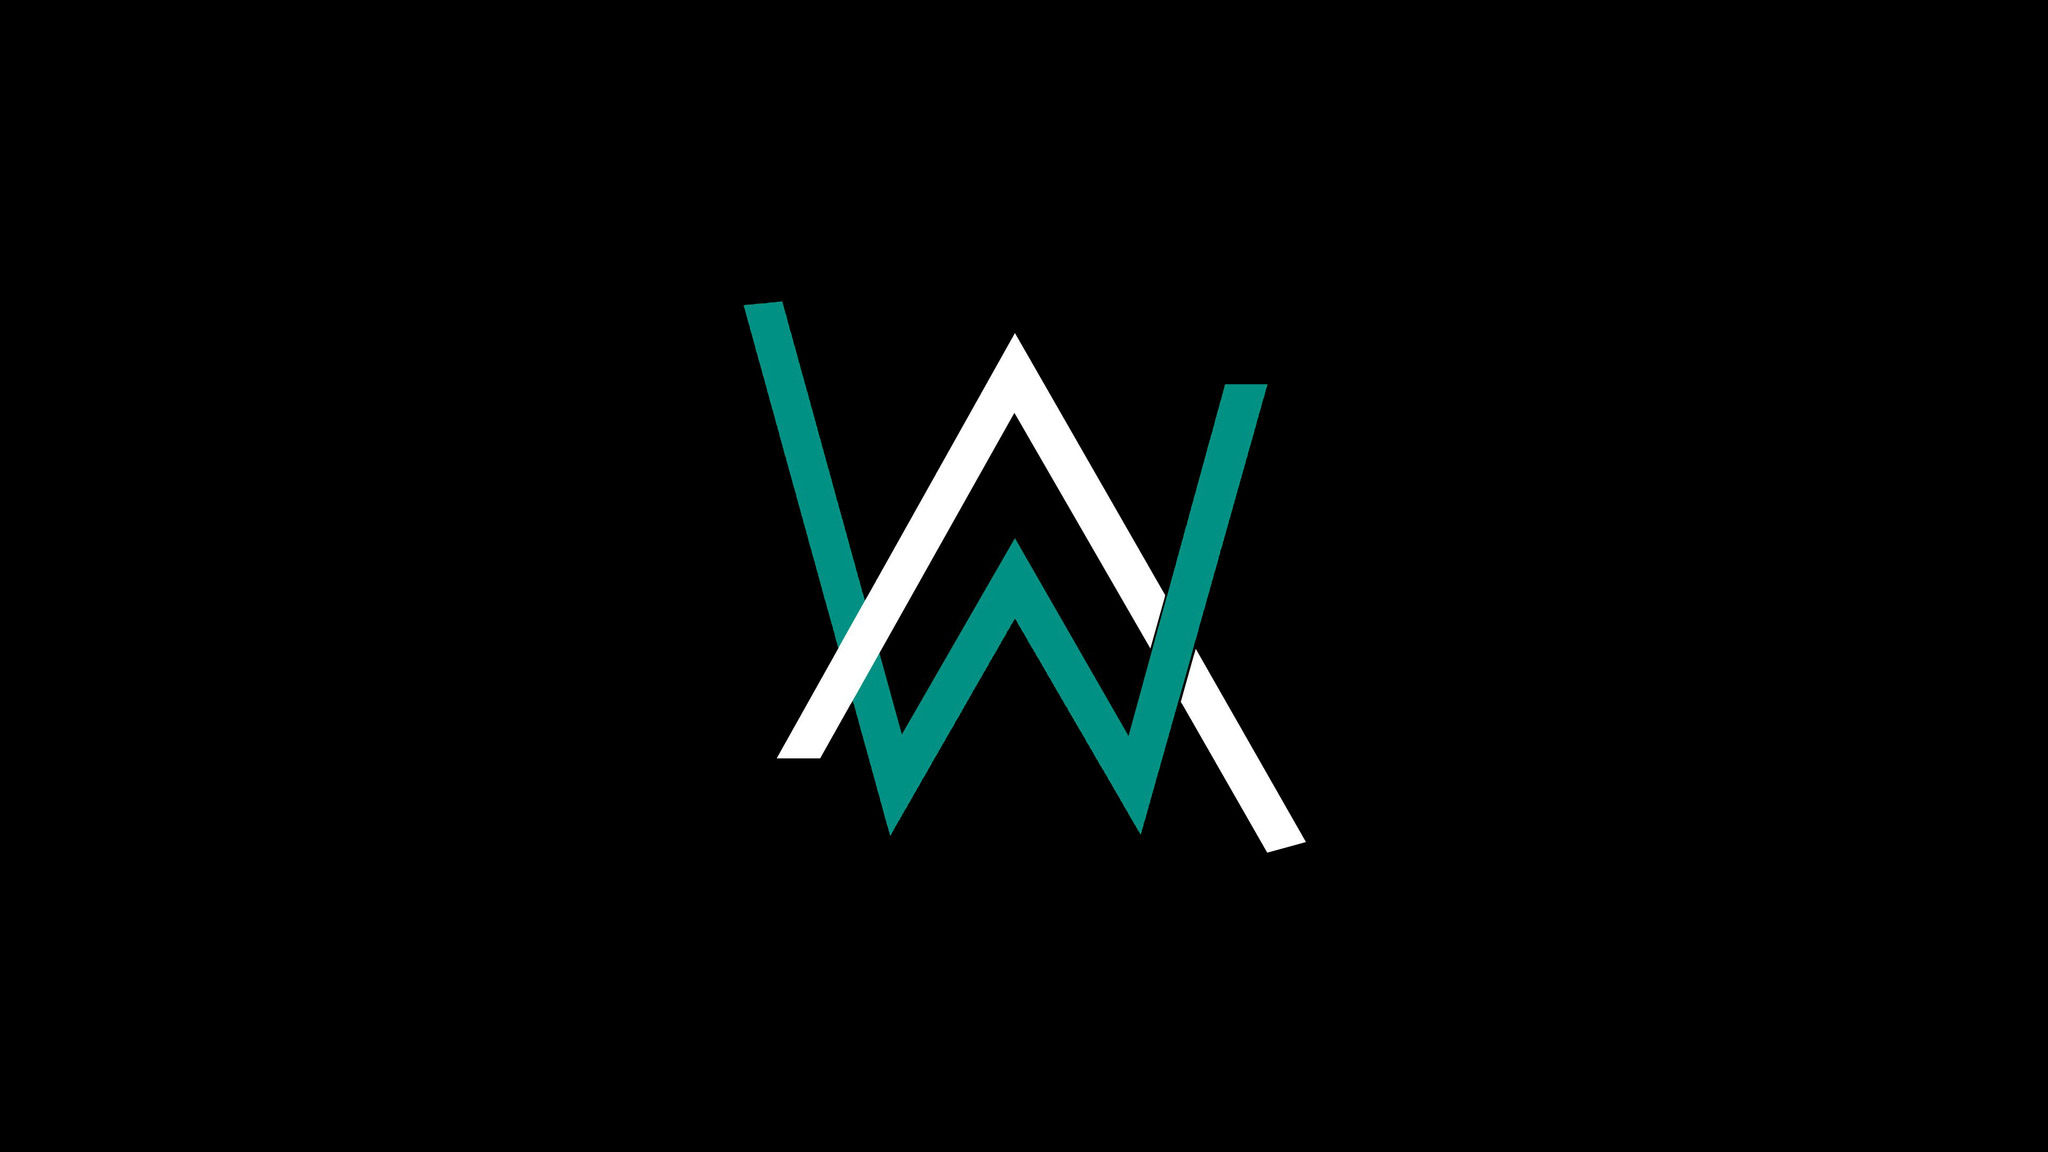 2048x1152 alan walker logo 4k 2048x1152 resolution hd 4k wallpapers